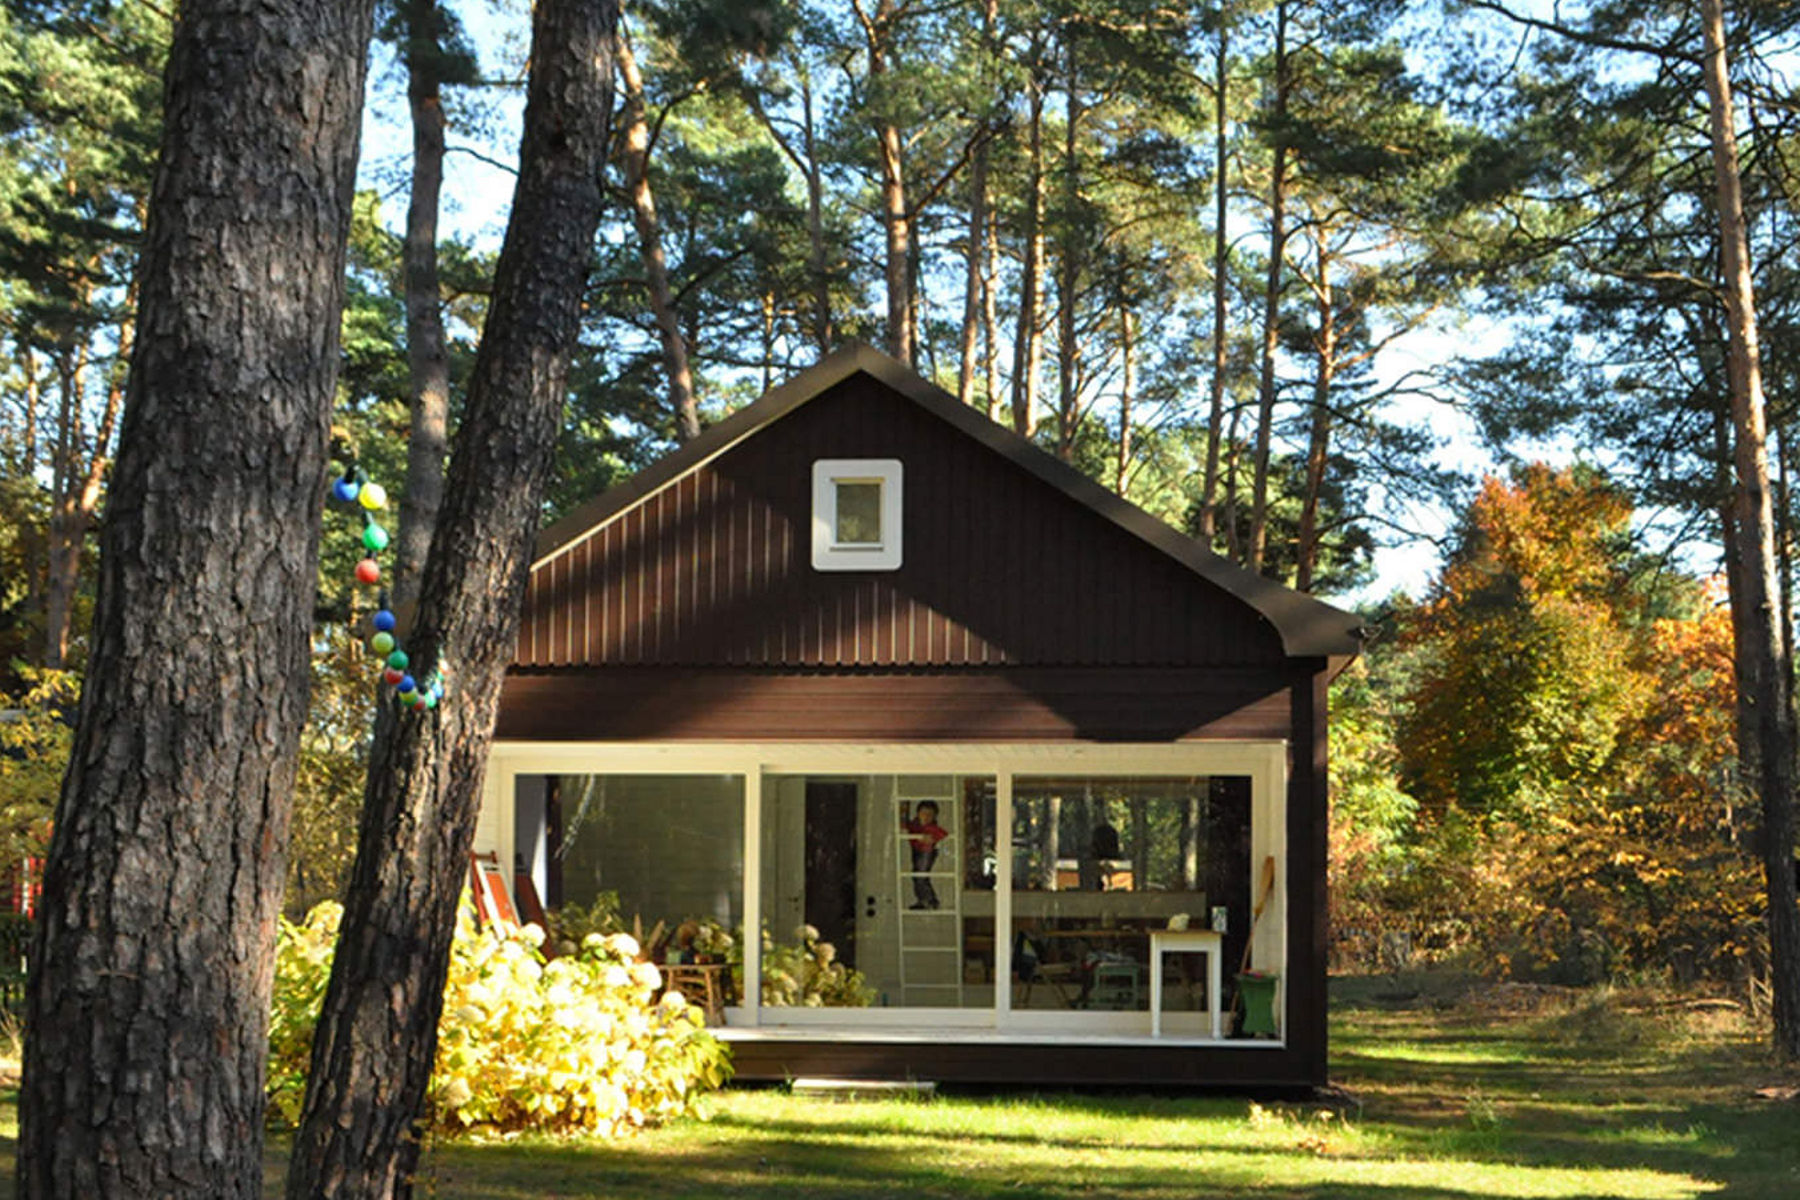 Houses In The Forest Gallery A Gingerbread House In The Forest Atelier St